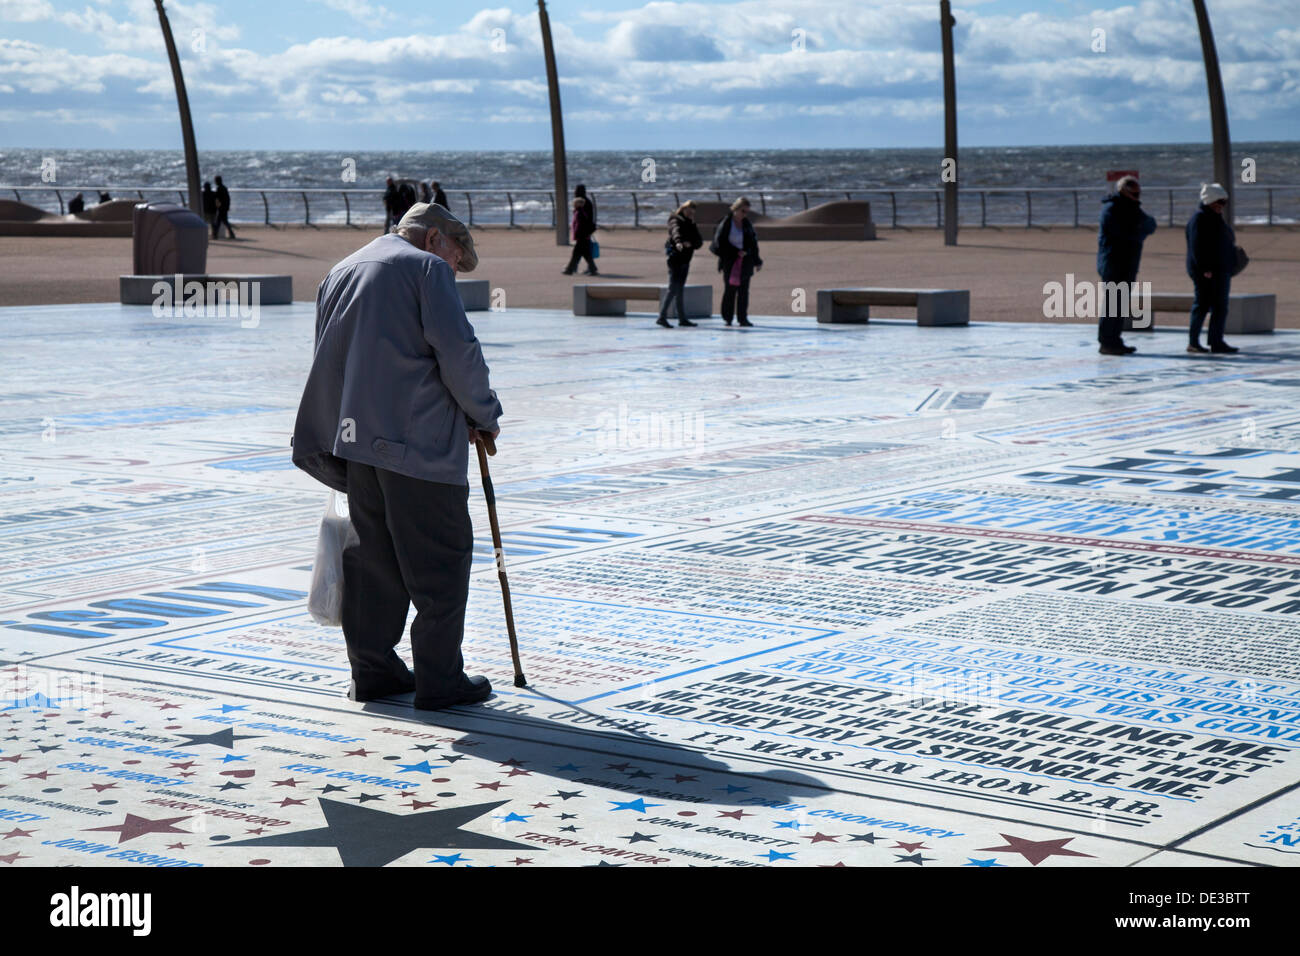 The comedians pavement an 1,880m2 granite and embossed typographical promenade celebrating Blackpool's tradition of comedy, UK - Stock Image